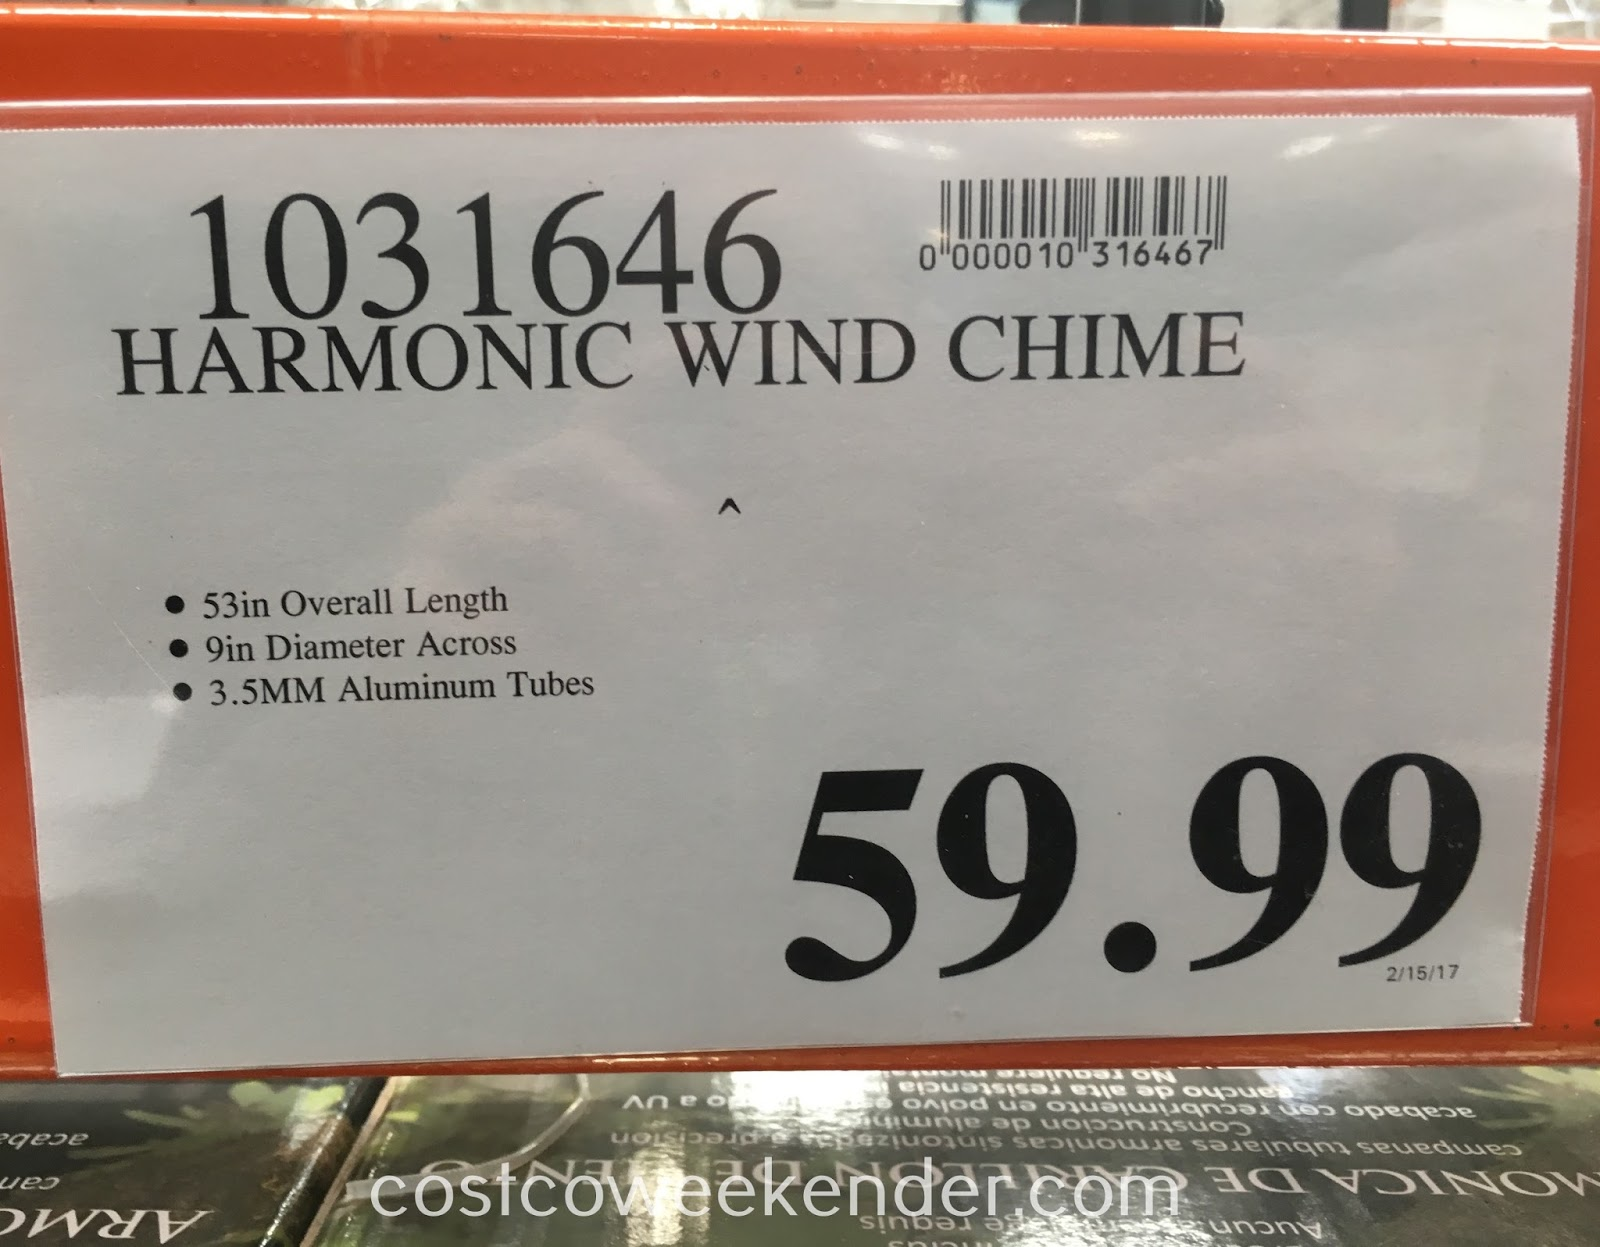 Deal for the Harmonic Wind Chime at Costco